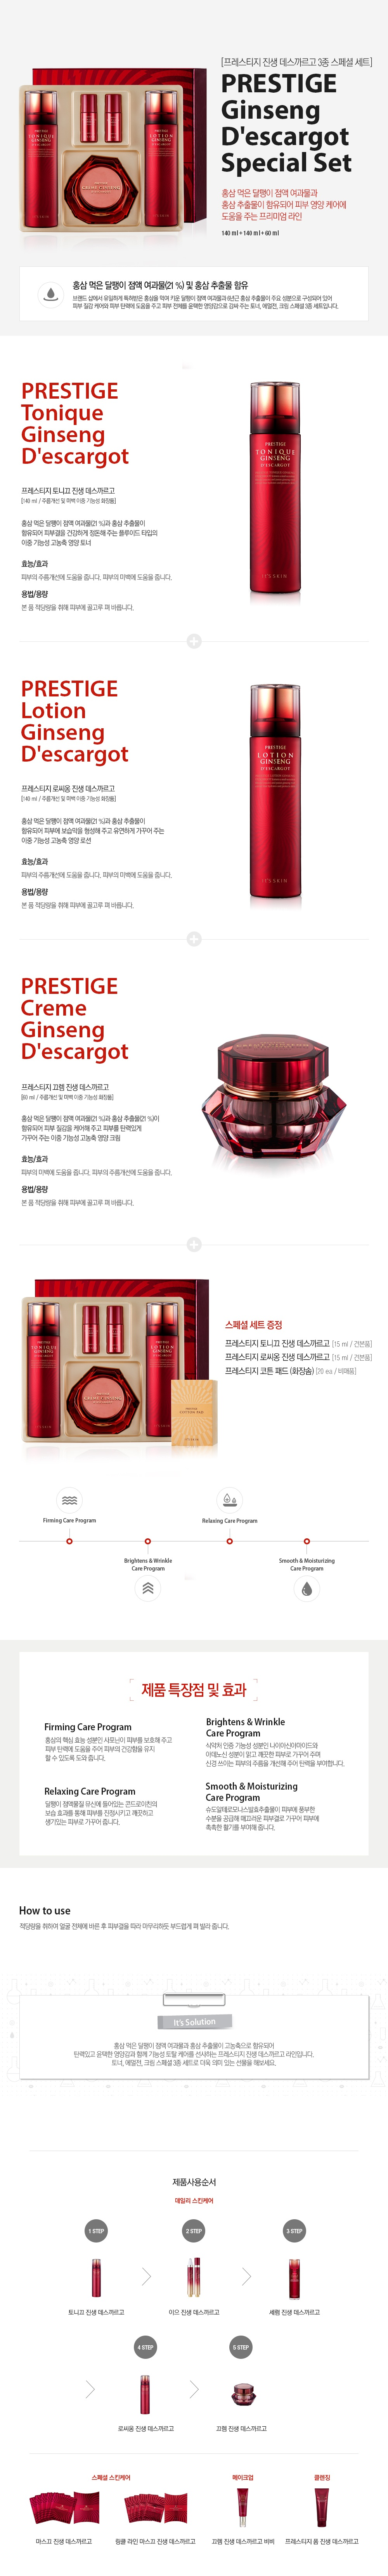 It's Skin Prestige Ginseng D'escargot Special Set korean cosmetic skincare product online shop malaysia vietnam macau1